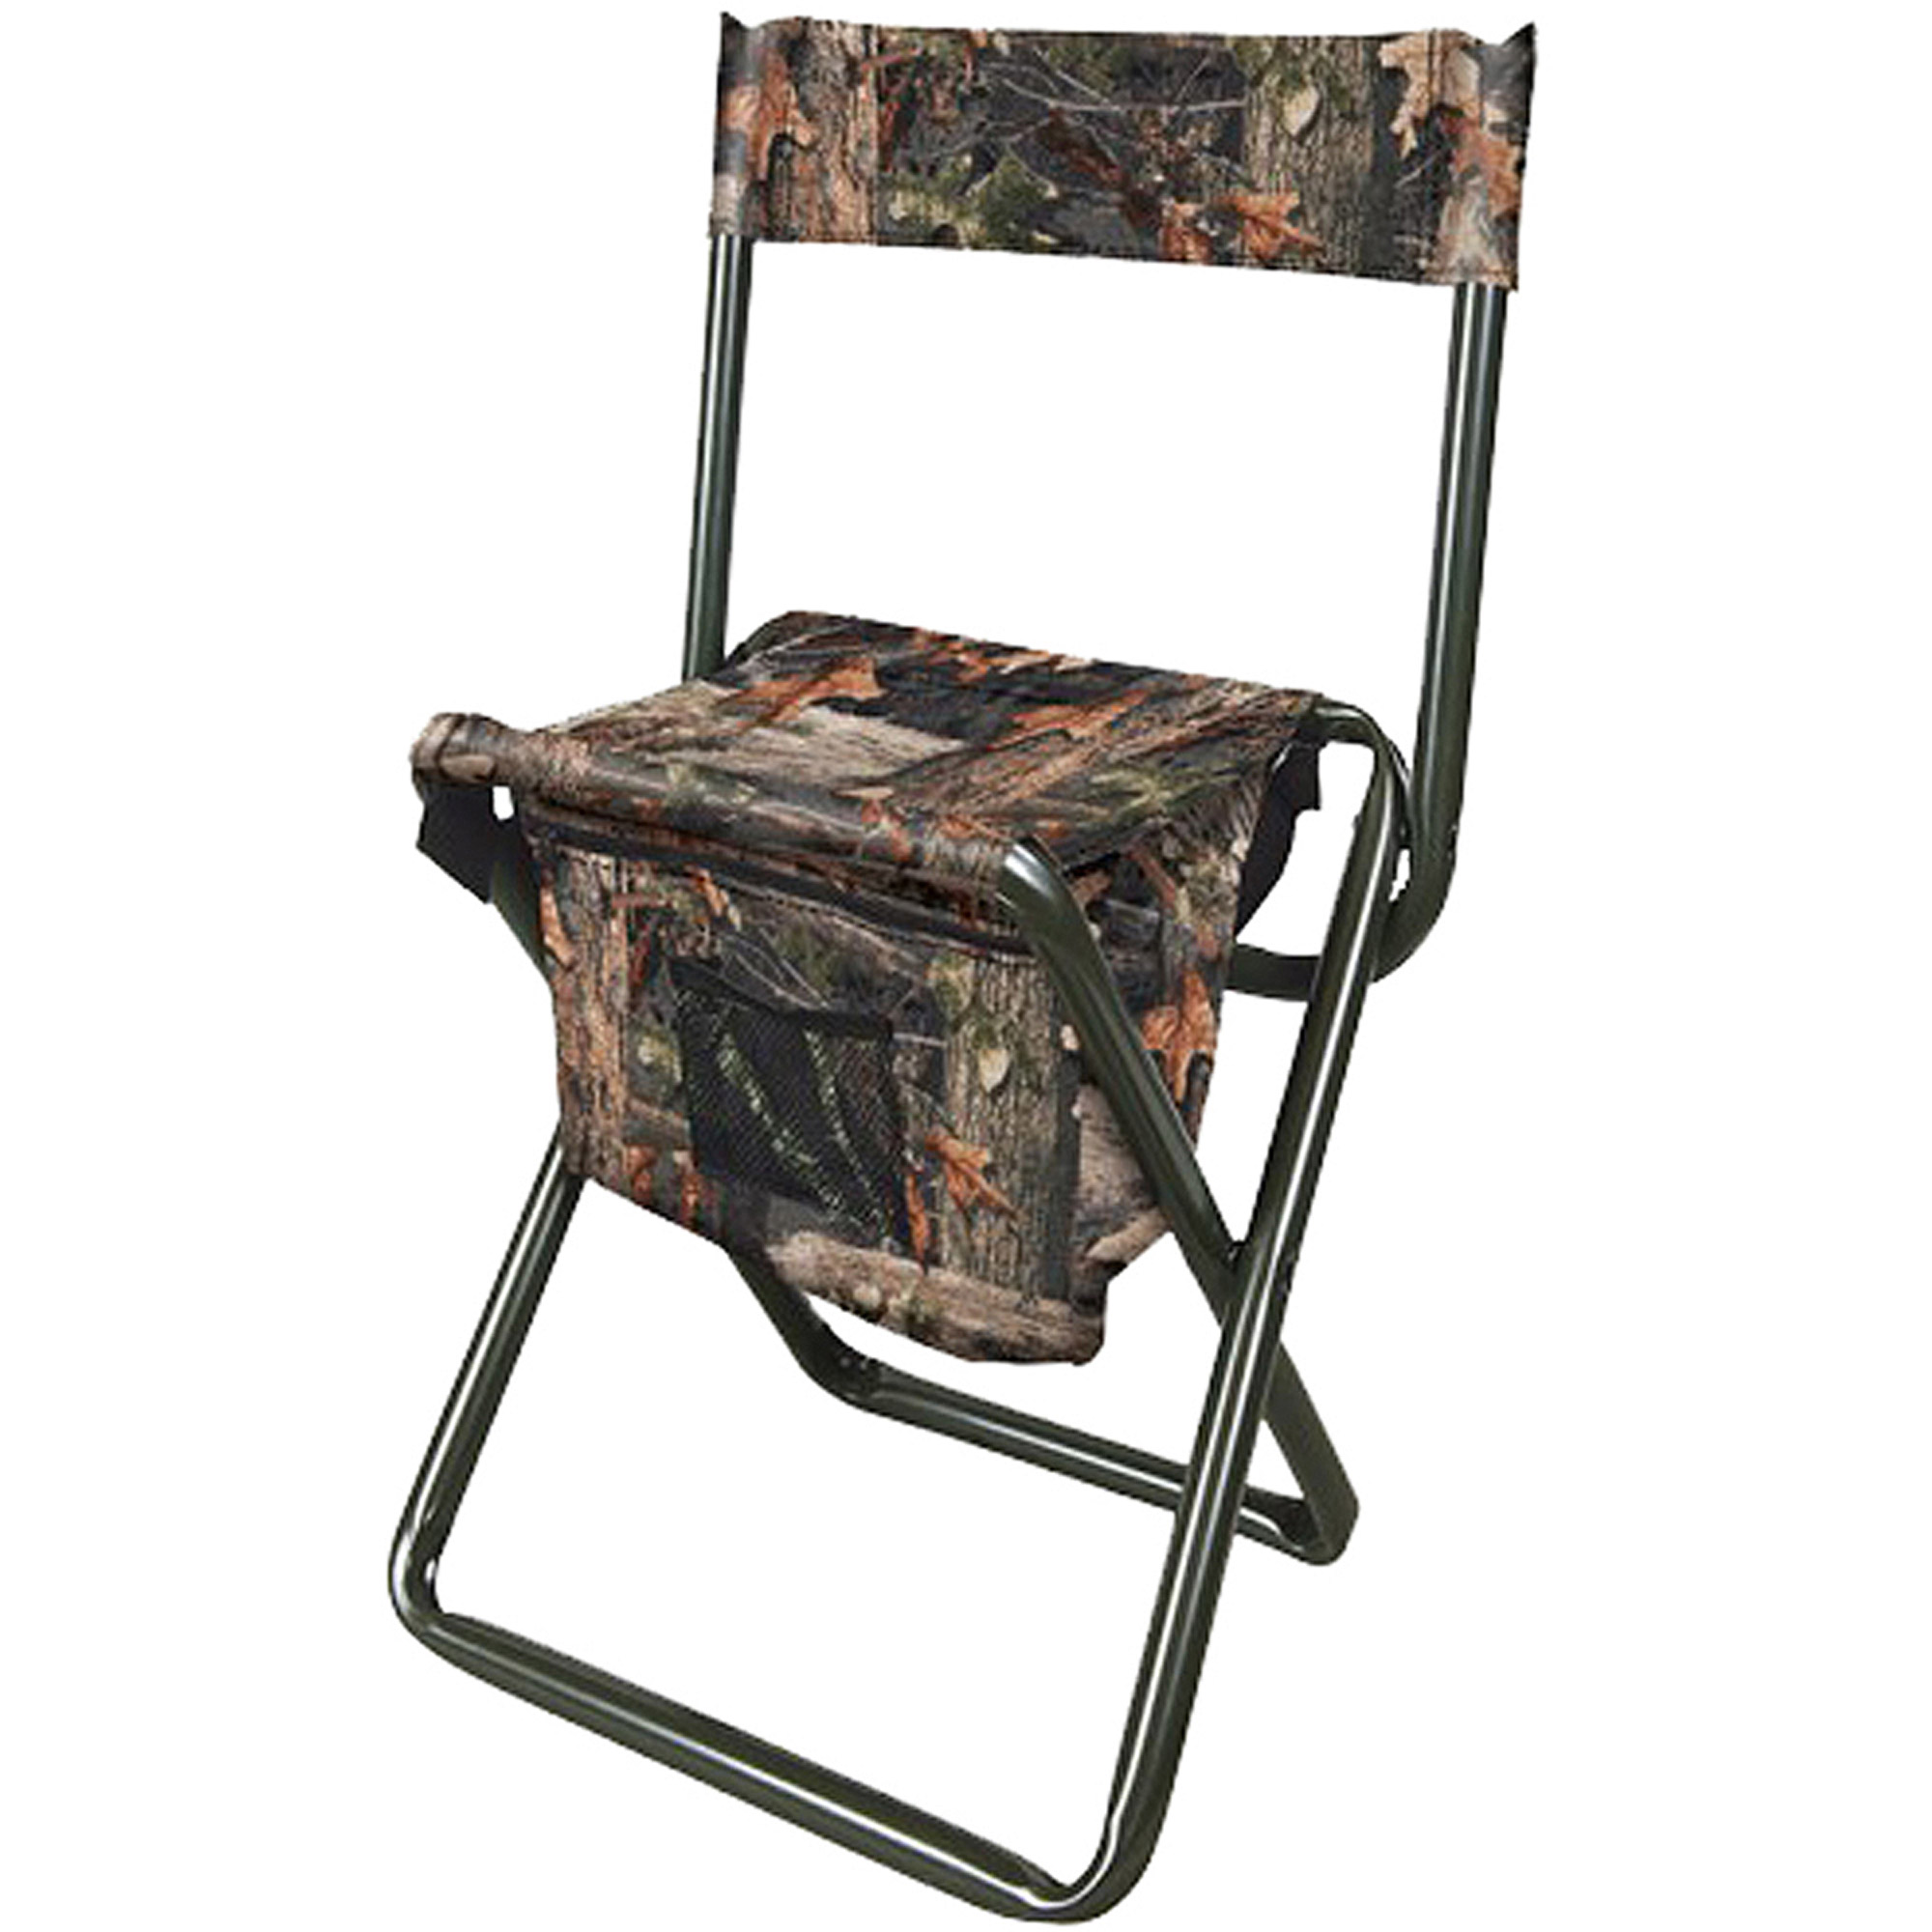 Hunter s Specialties Camo Dove Stool Realtree Xtra Green Walmart